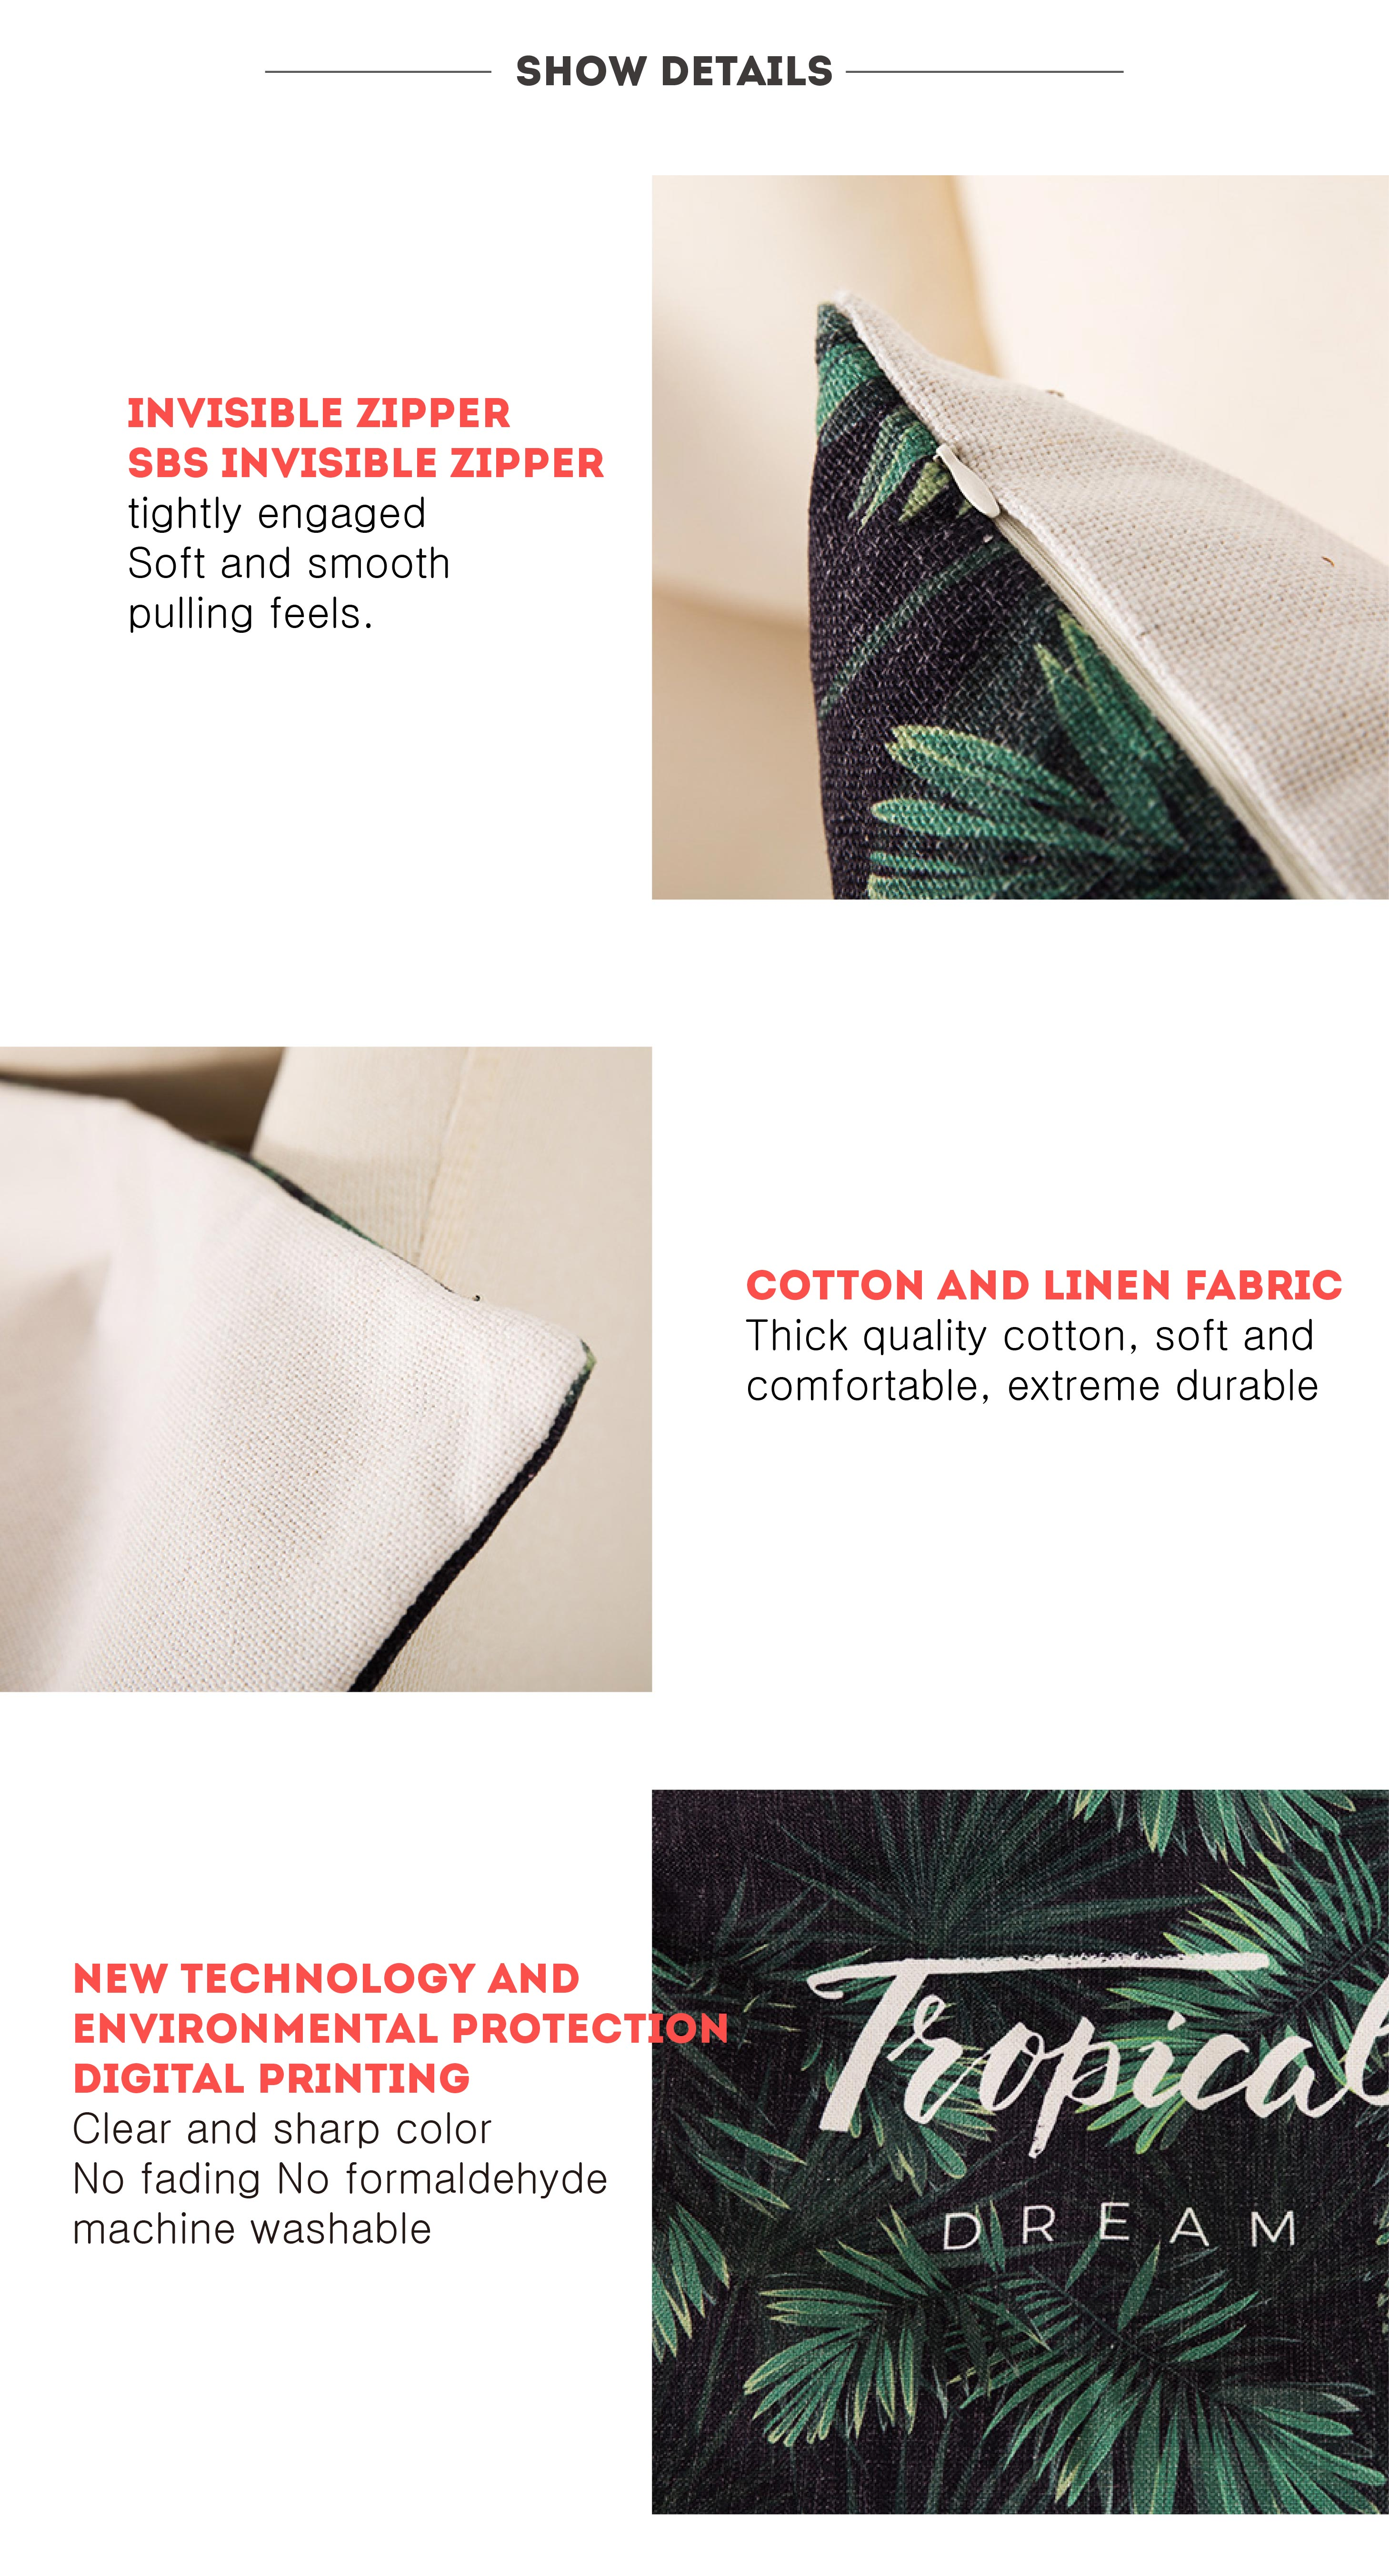 Hed20899d6ad34b8fa9112f5d730355bbi Deer Cushion Cotton Two side printed linen Cartoon stripes tropical plants European style